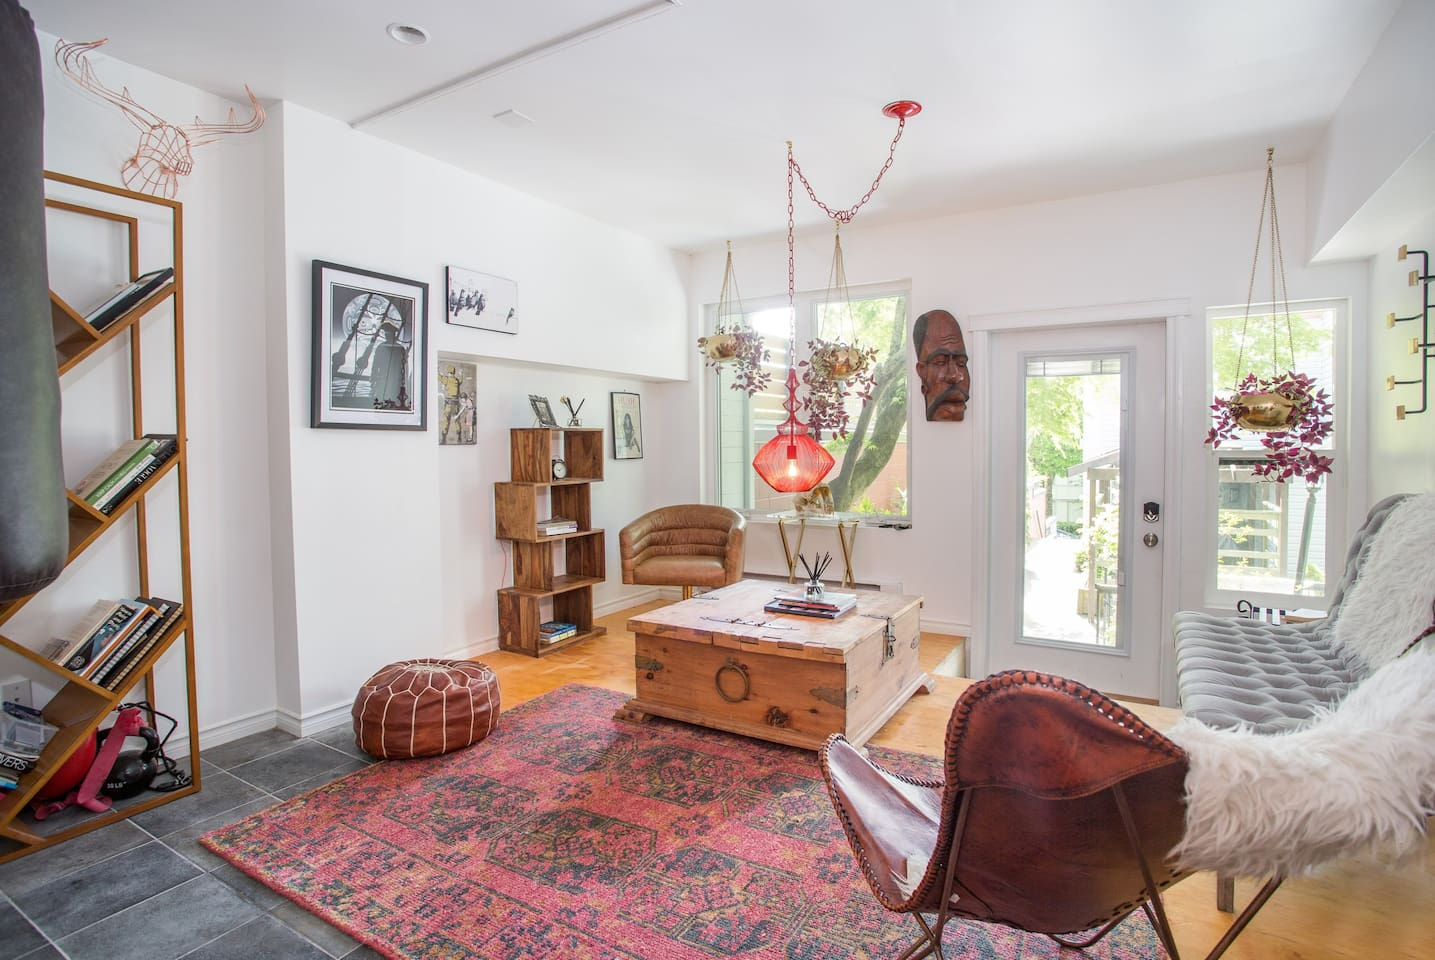 An eclectic and open concept artist's den with plenty of natural light